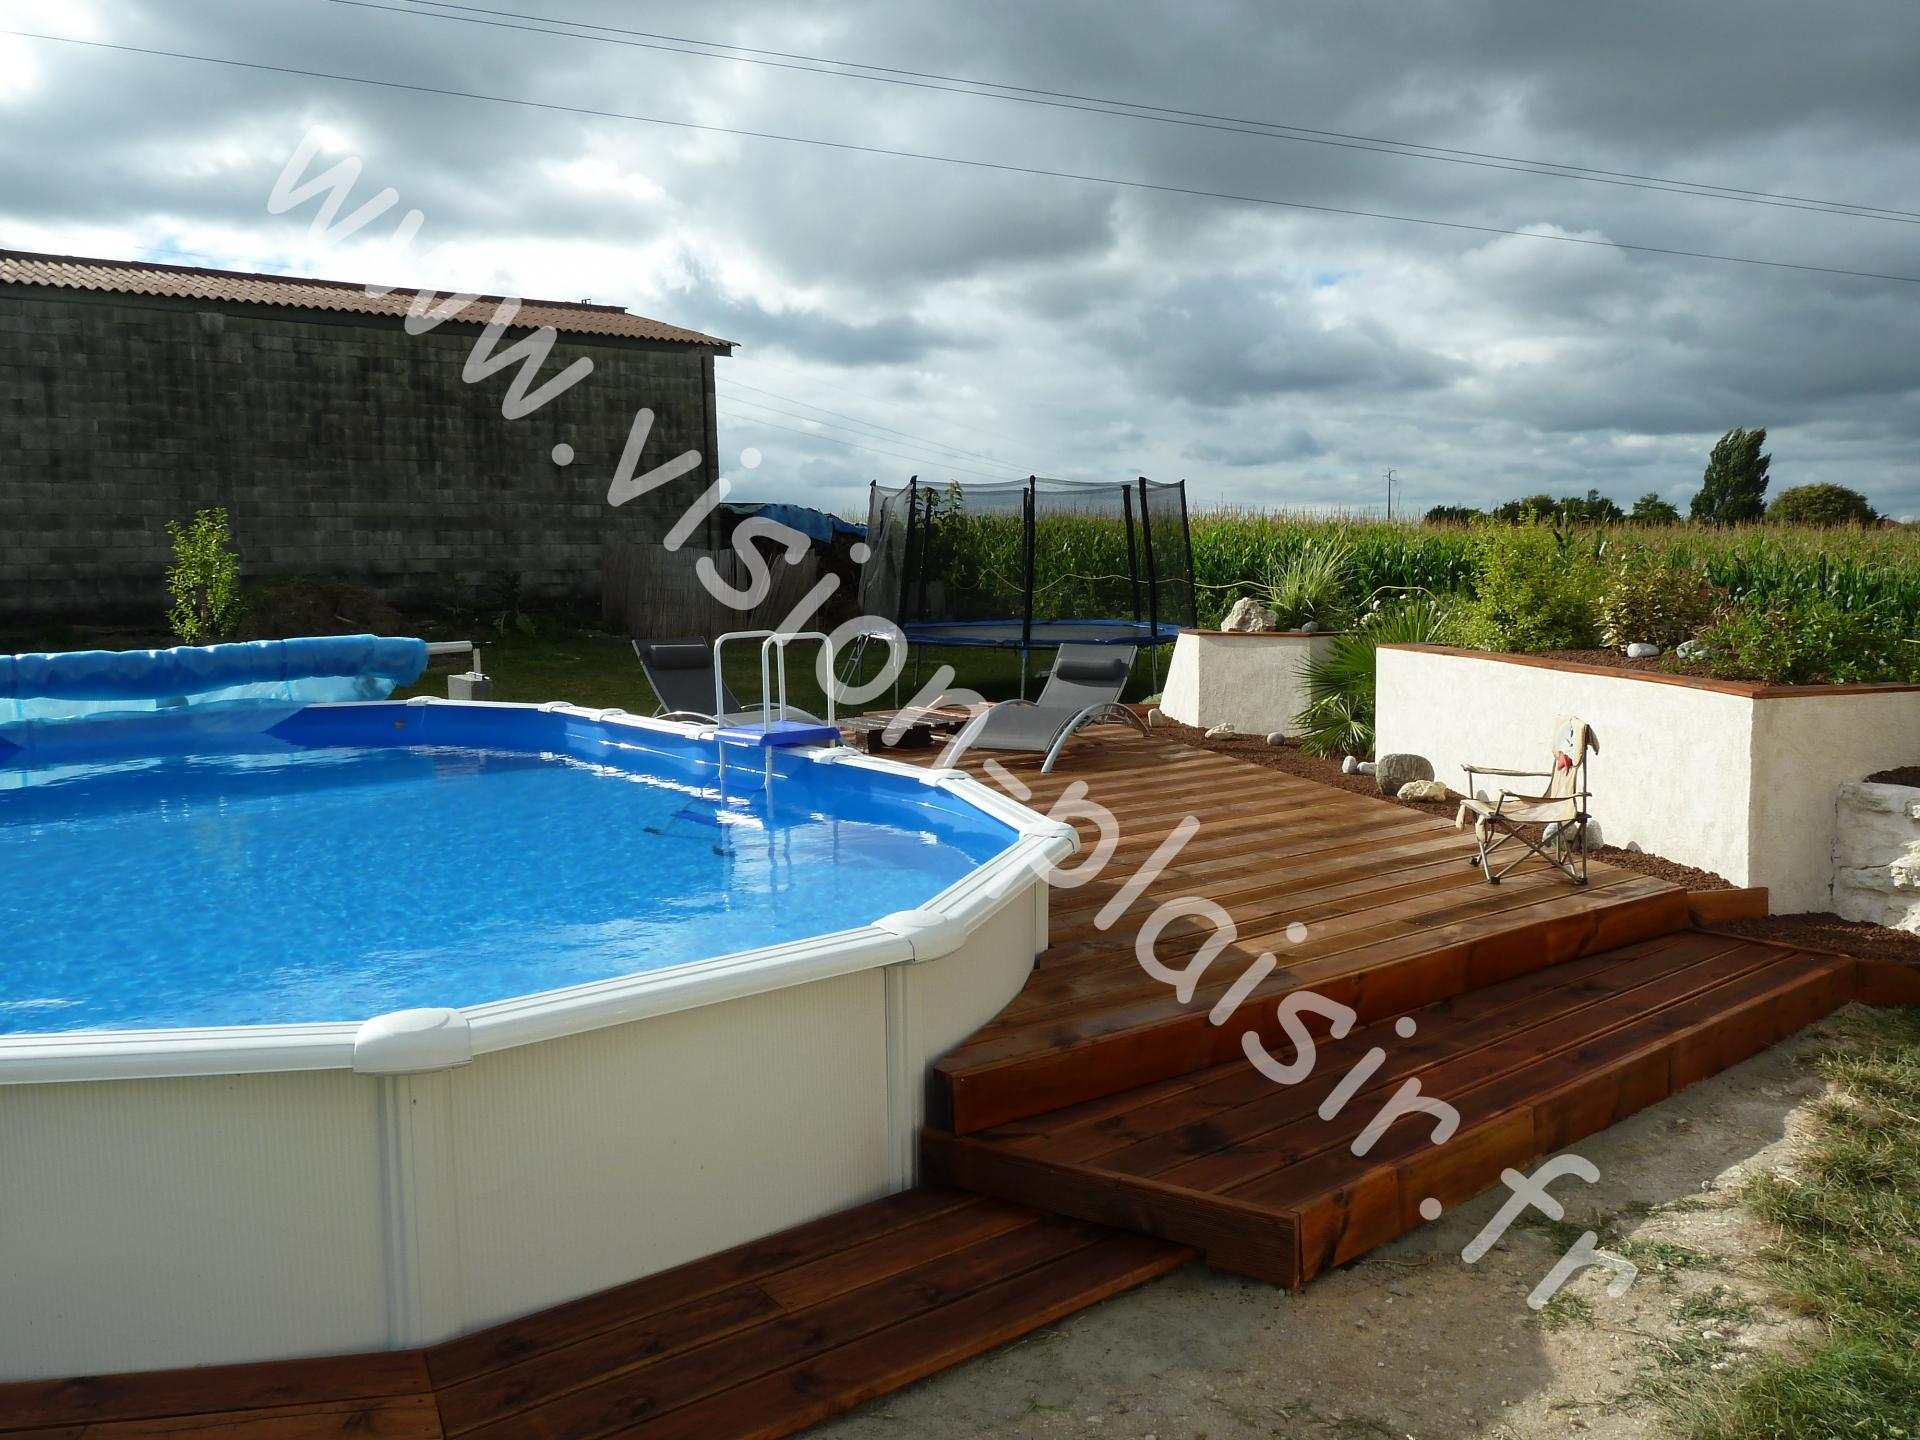 Blog de vision plaisir piscine hors sol semi enterr e for Piscine rectangulaire bois semi enterree